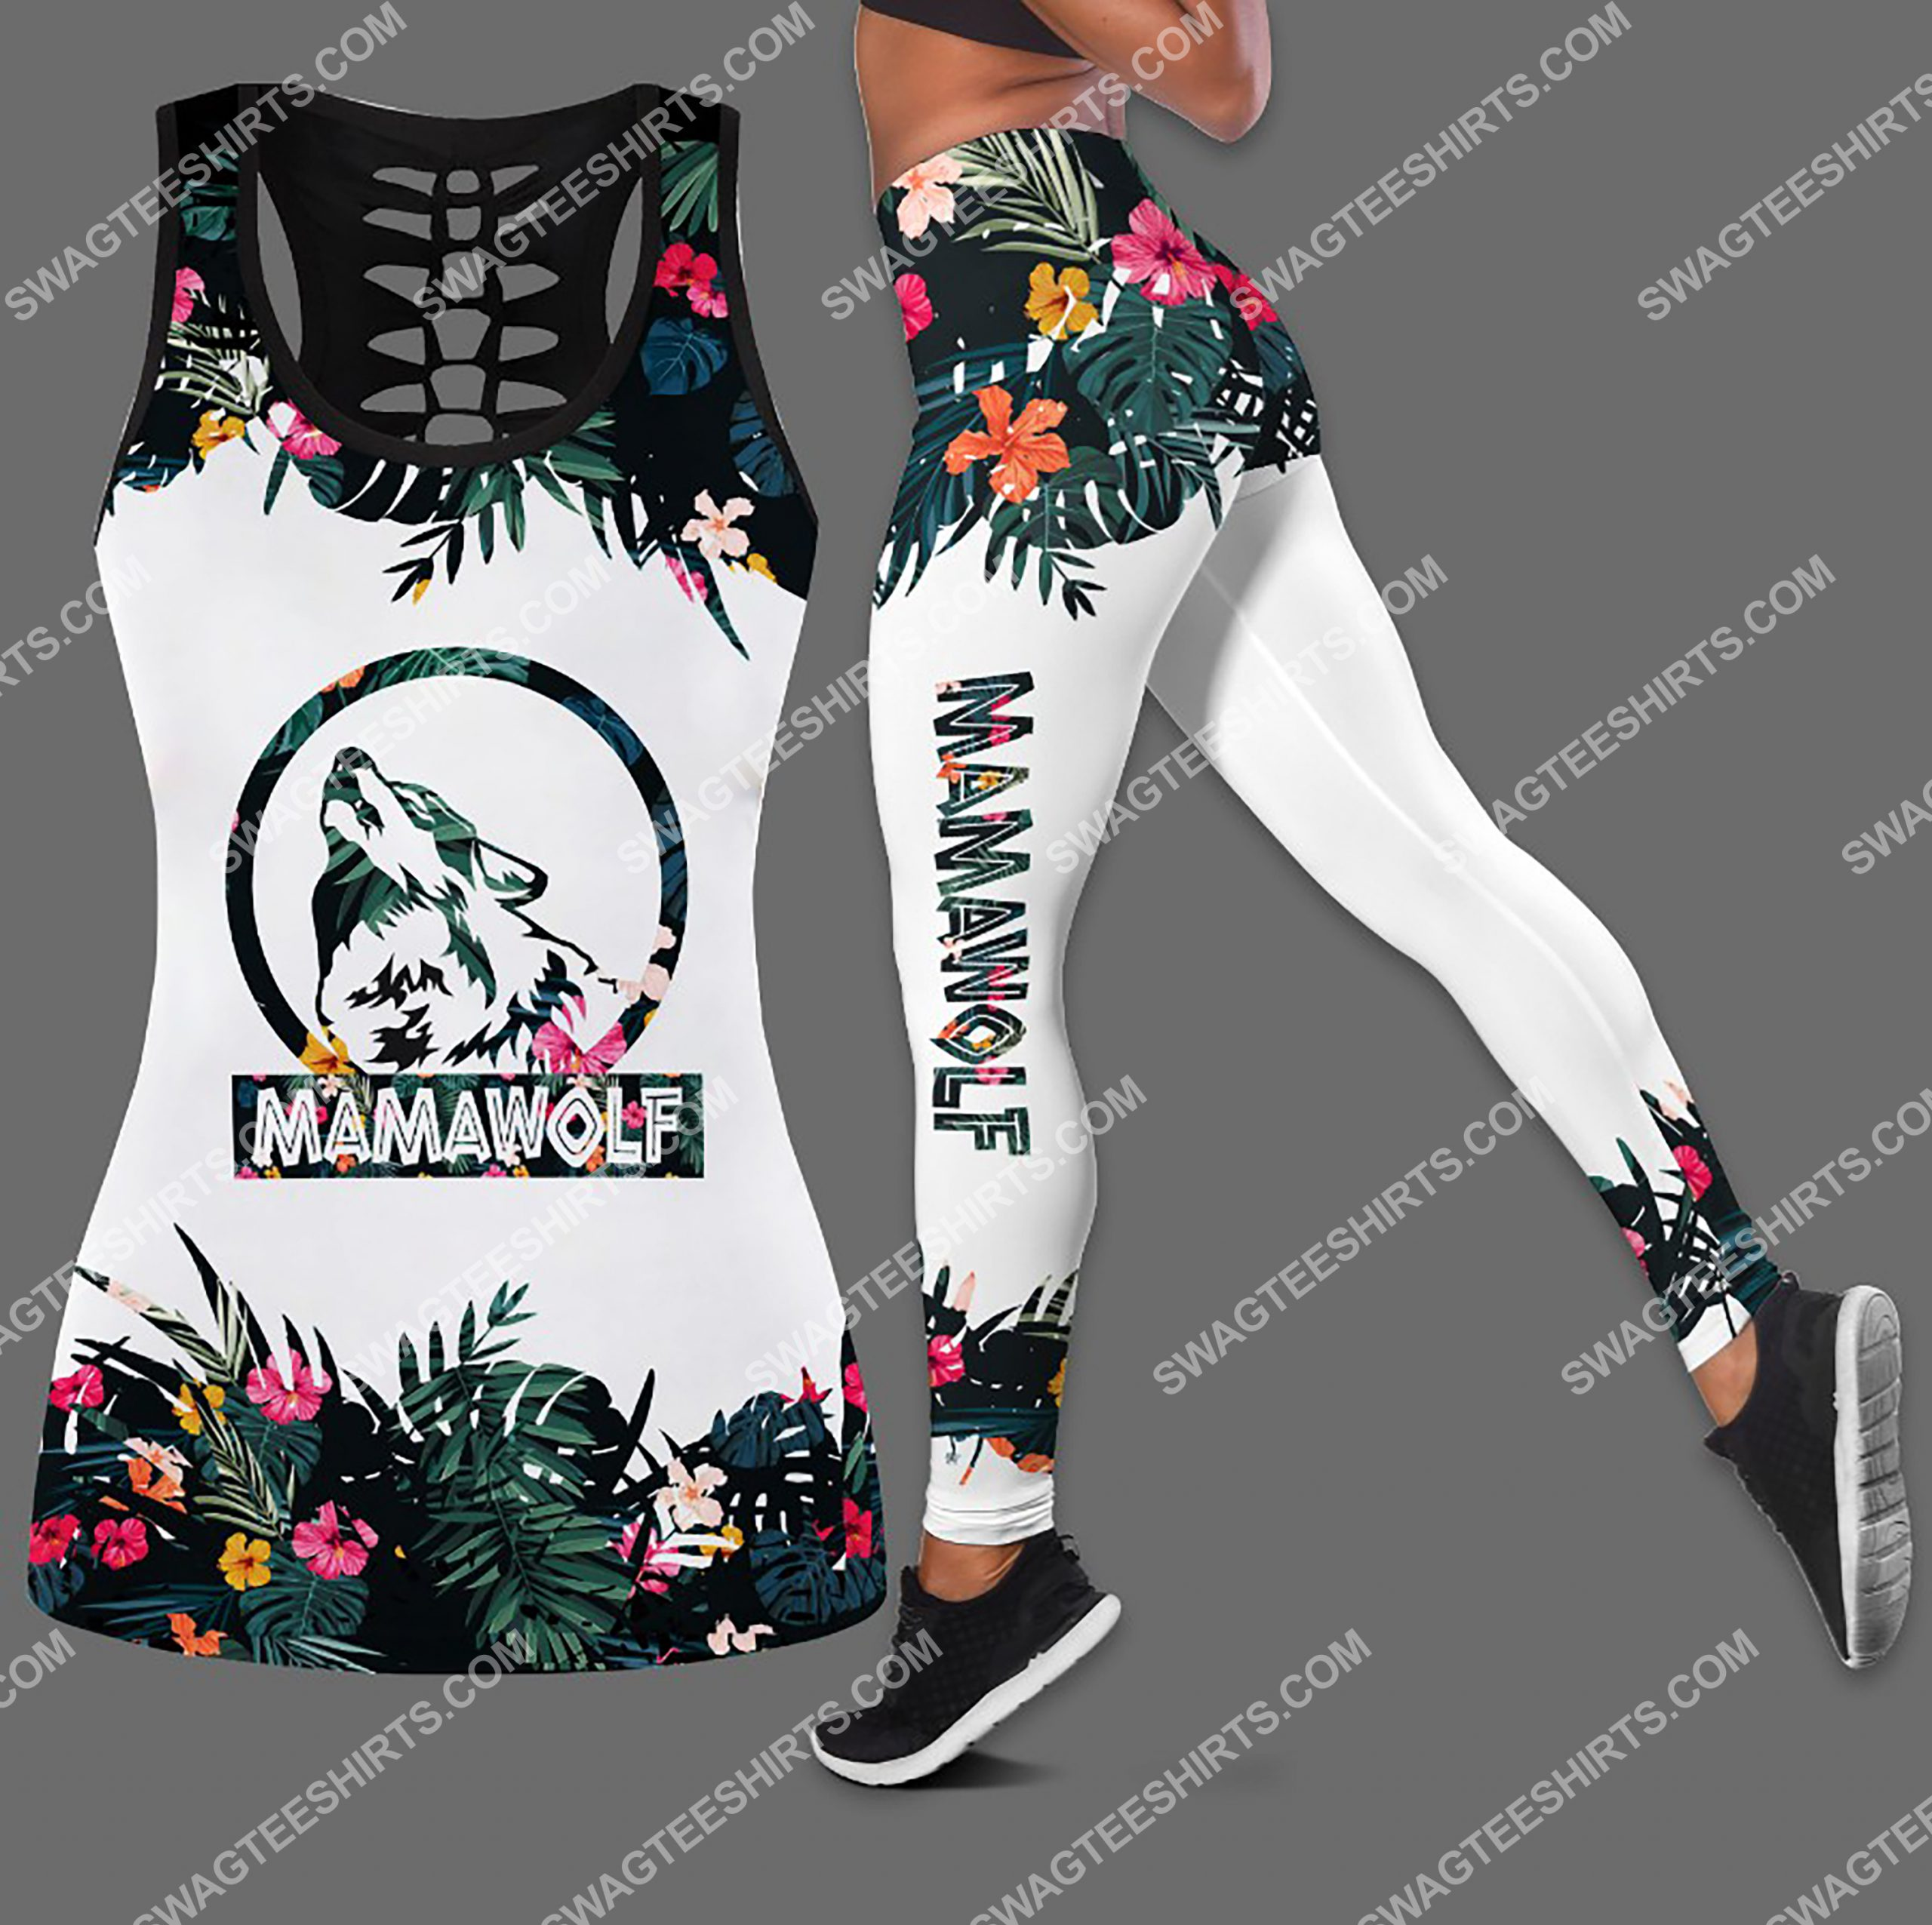 wolf lover mama wolf floral all over printed leggings set 1